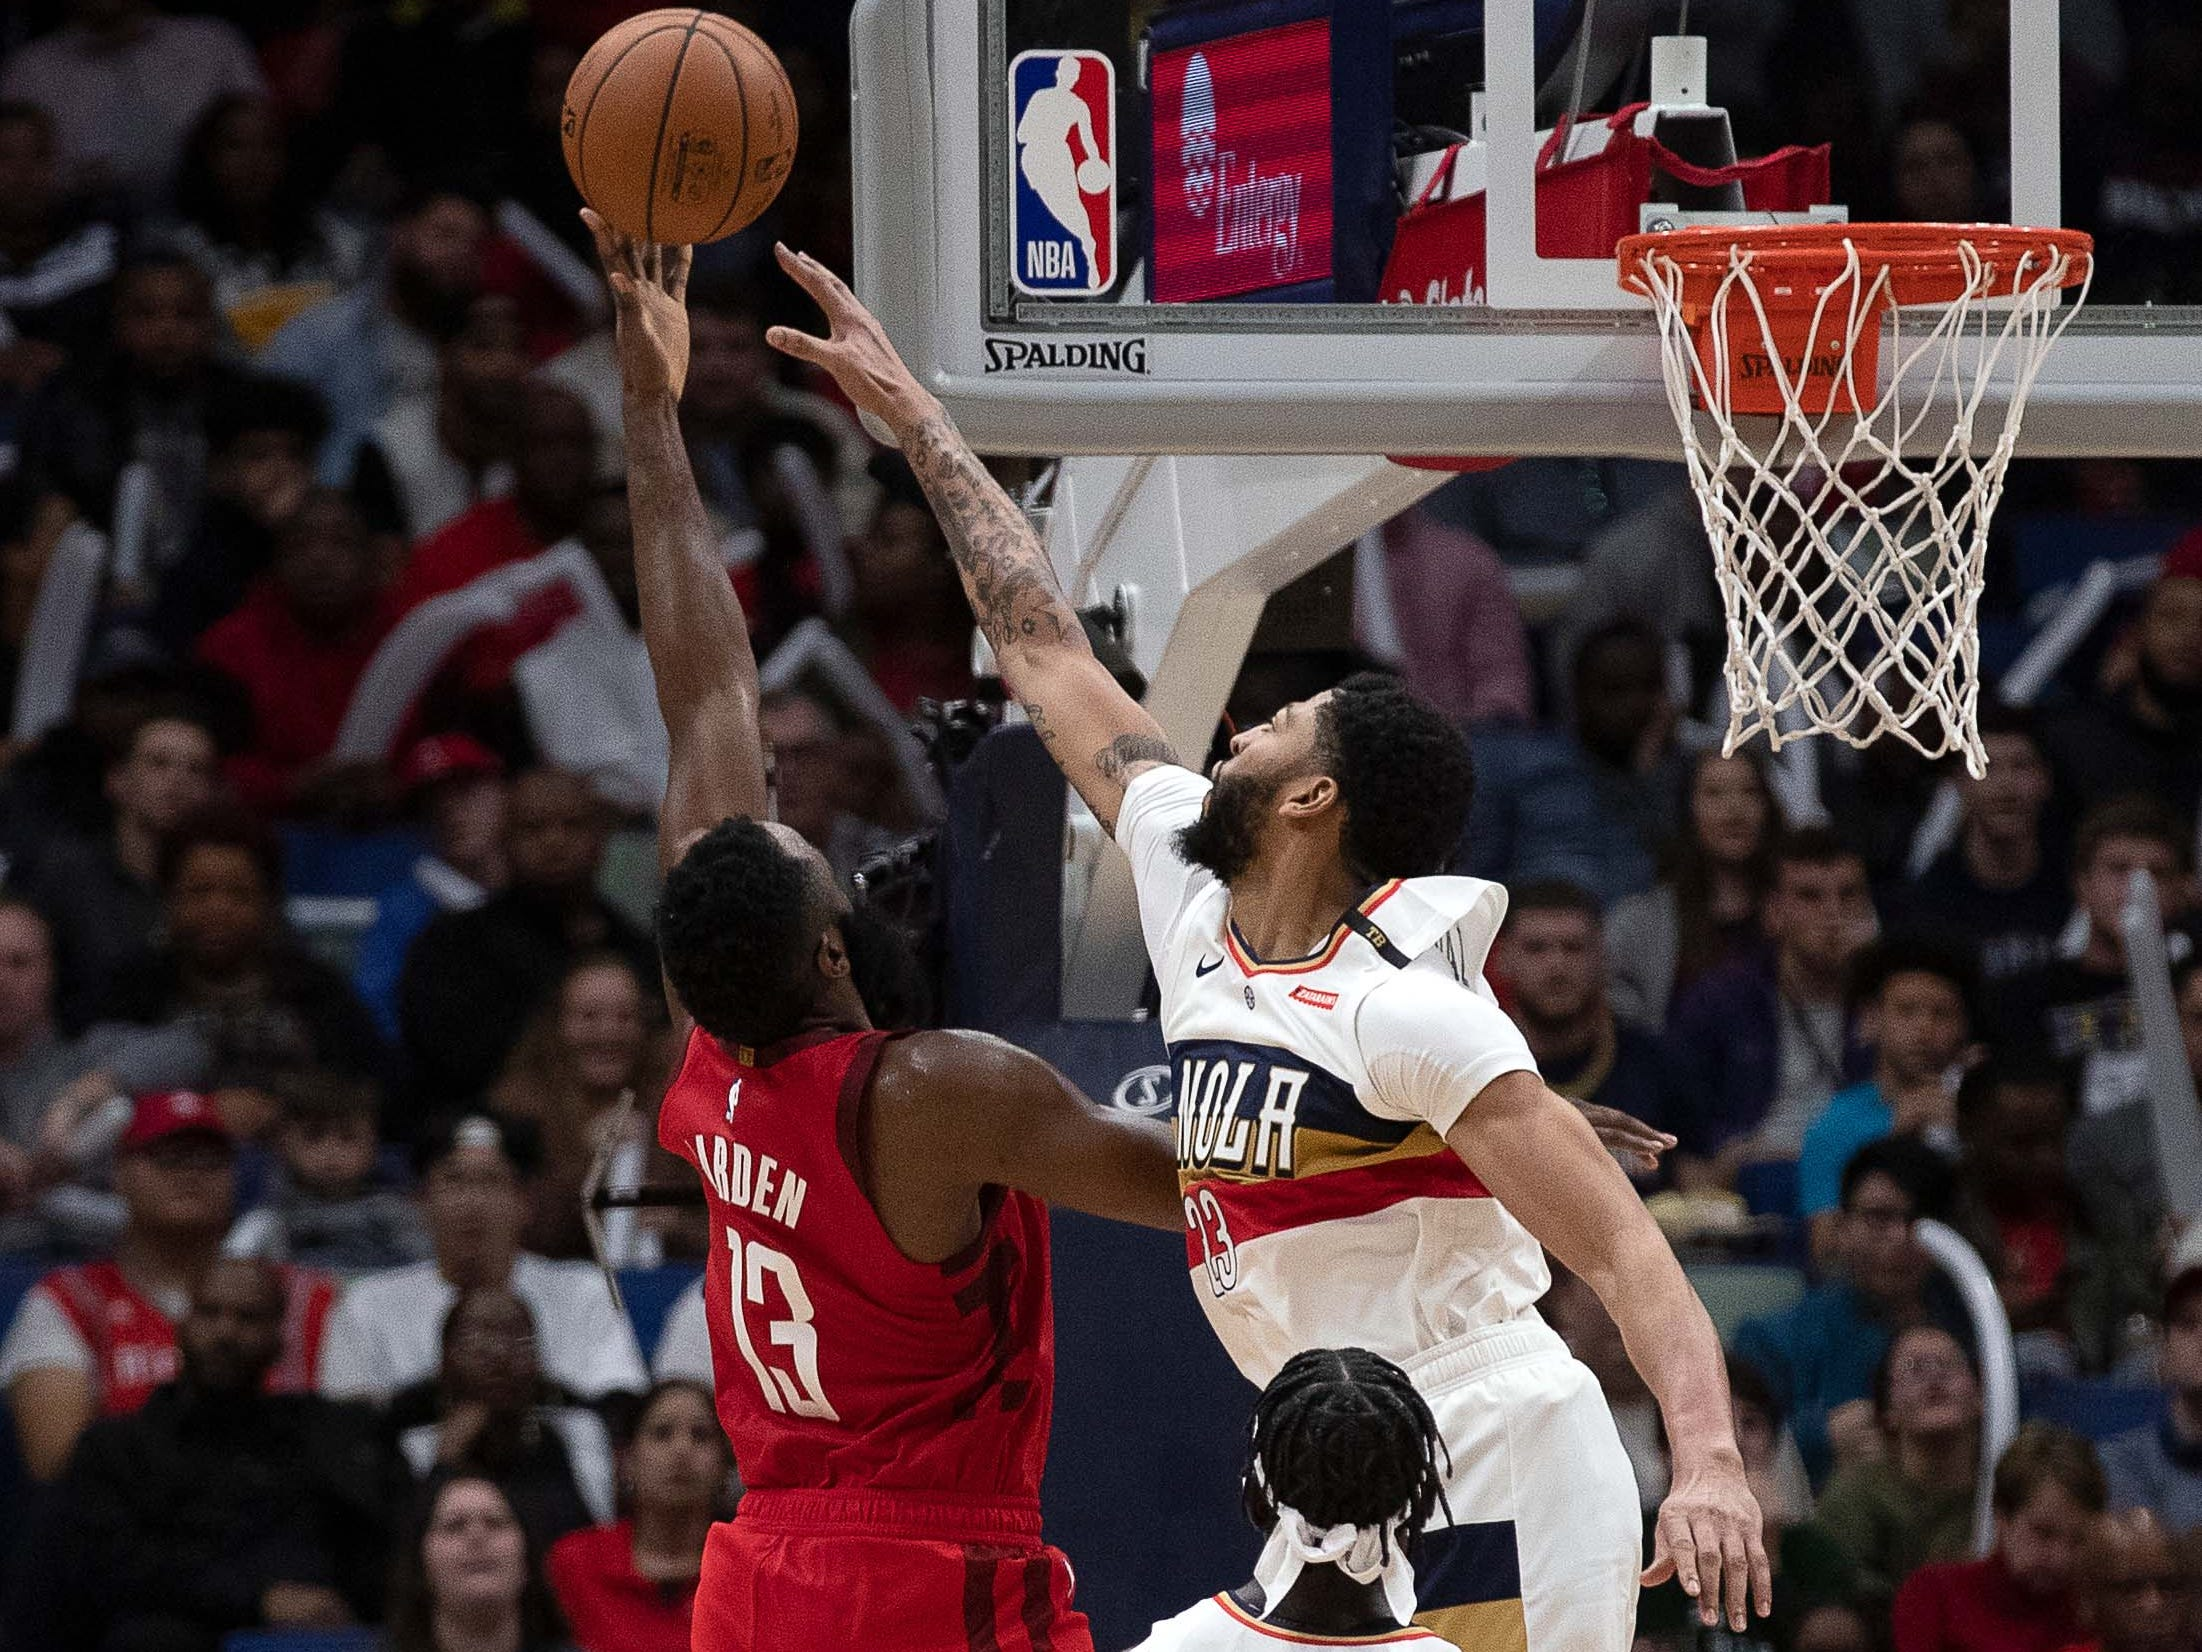 Dec. 29: Rockets guard James Harden (13) gets his shot just over the out-stretched arm of Pelicans defender Anthony Davis (23) during the second half in New Orleans.